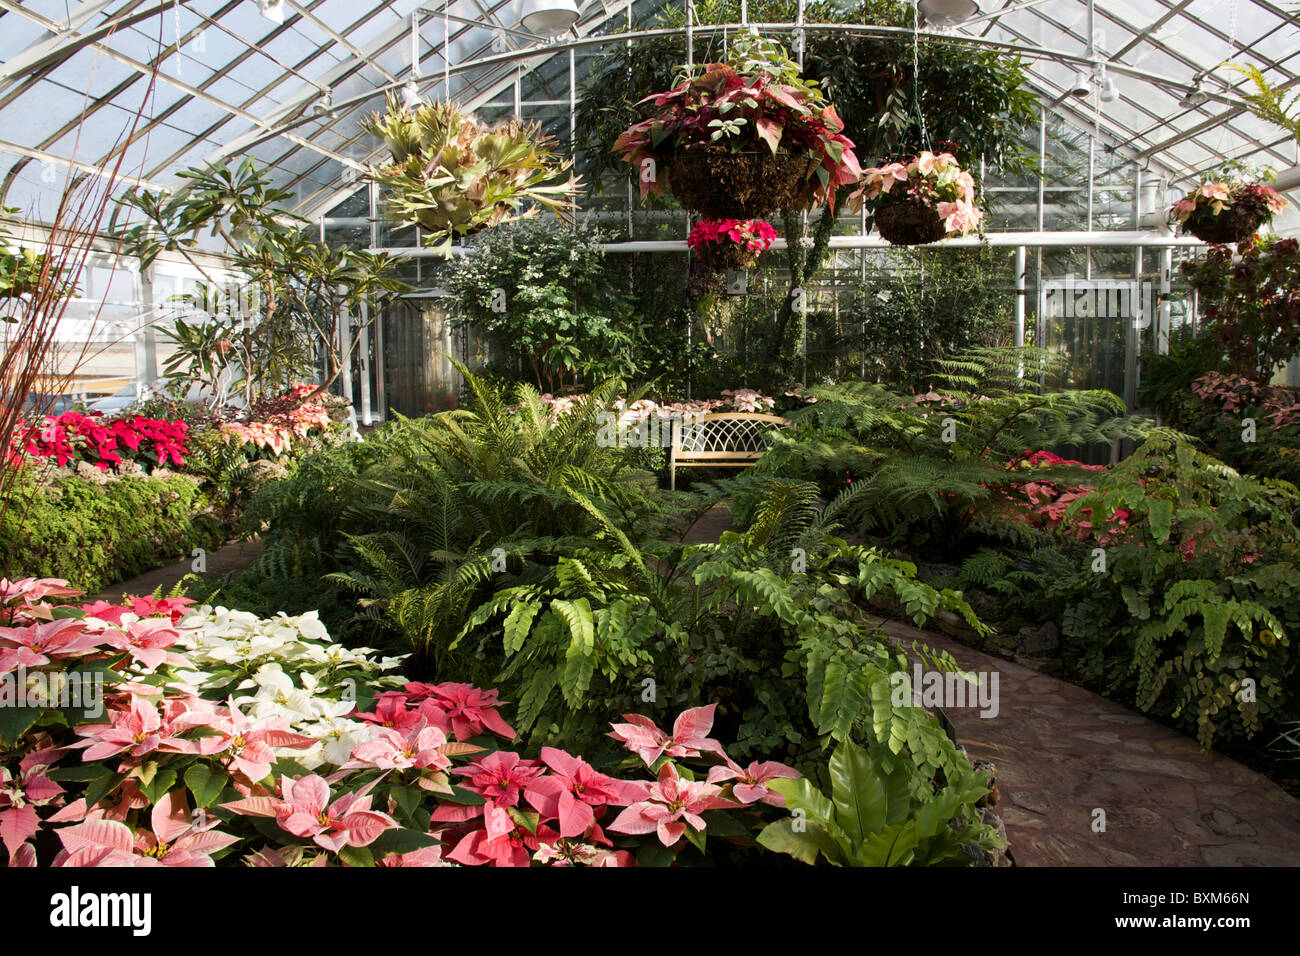 Oak Park Conservatory. Poinsettias On Display At Christmas.